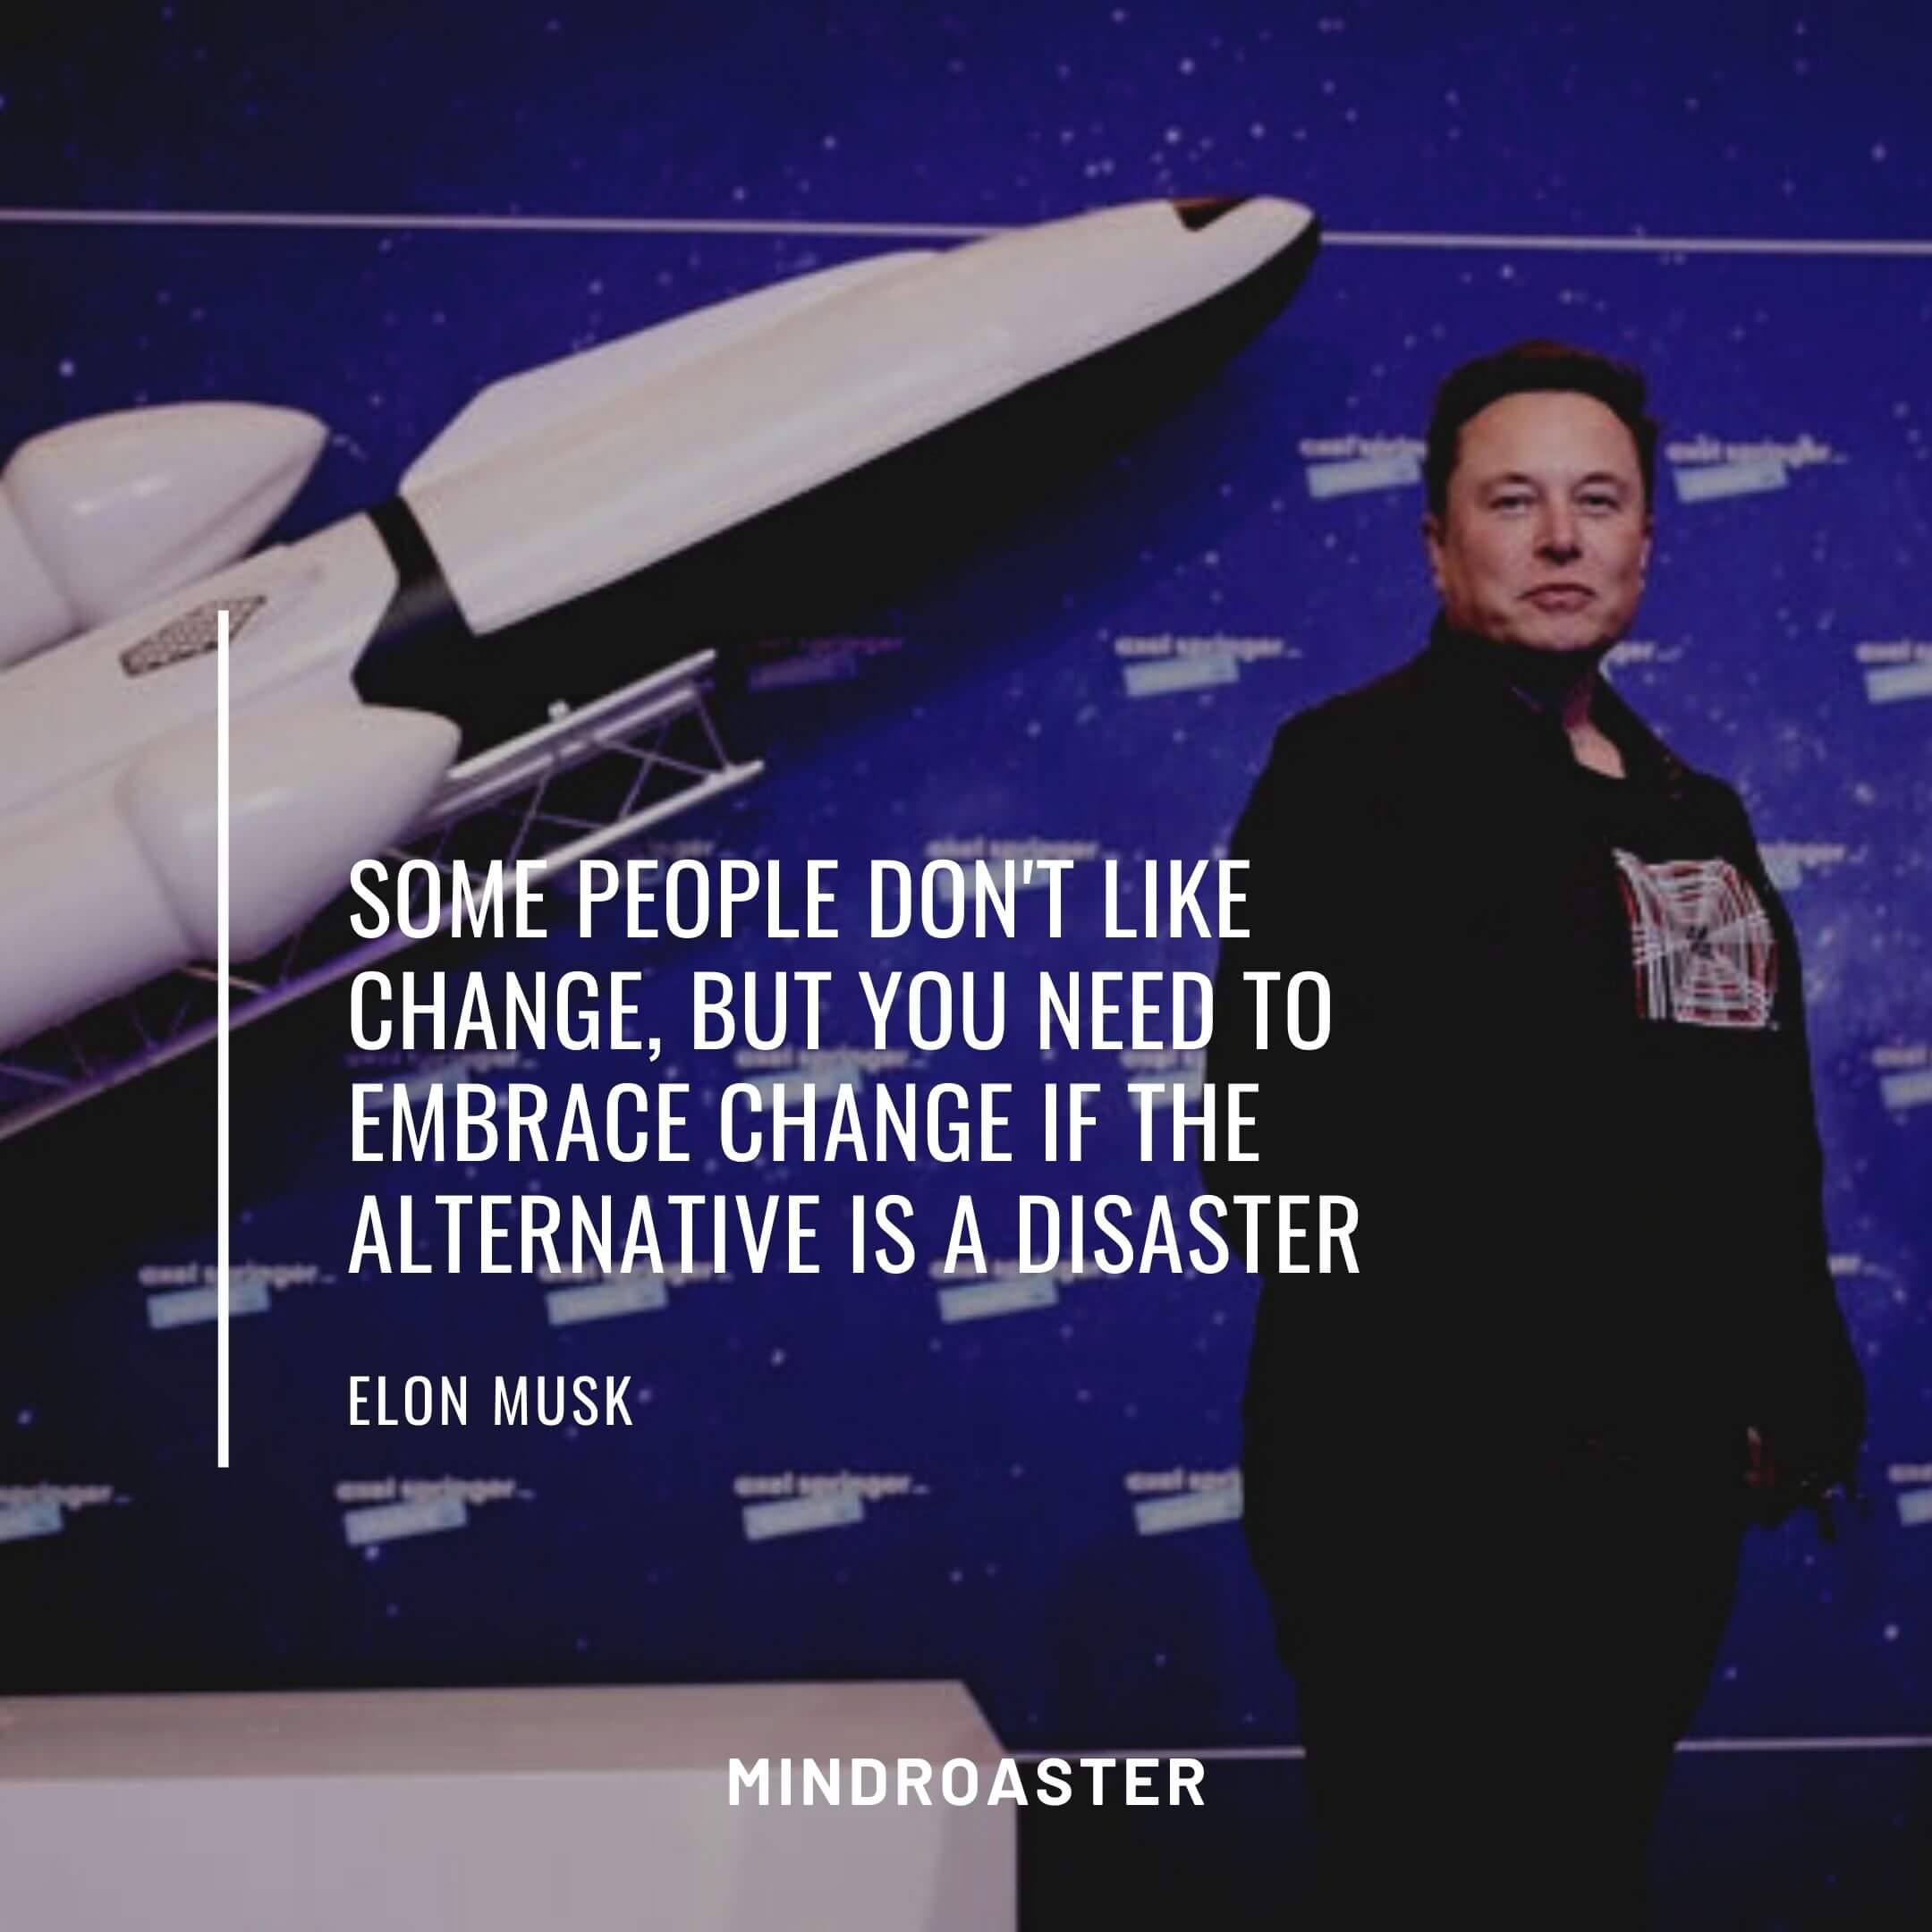 Some people don't like change, but you need to embrace change if the alternative is a disaster